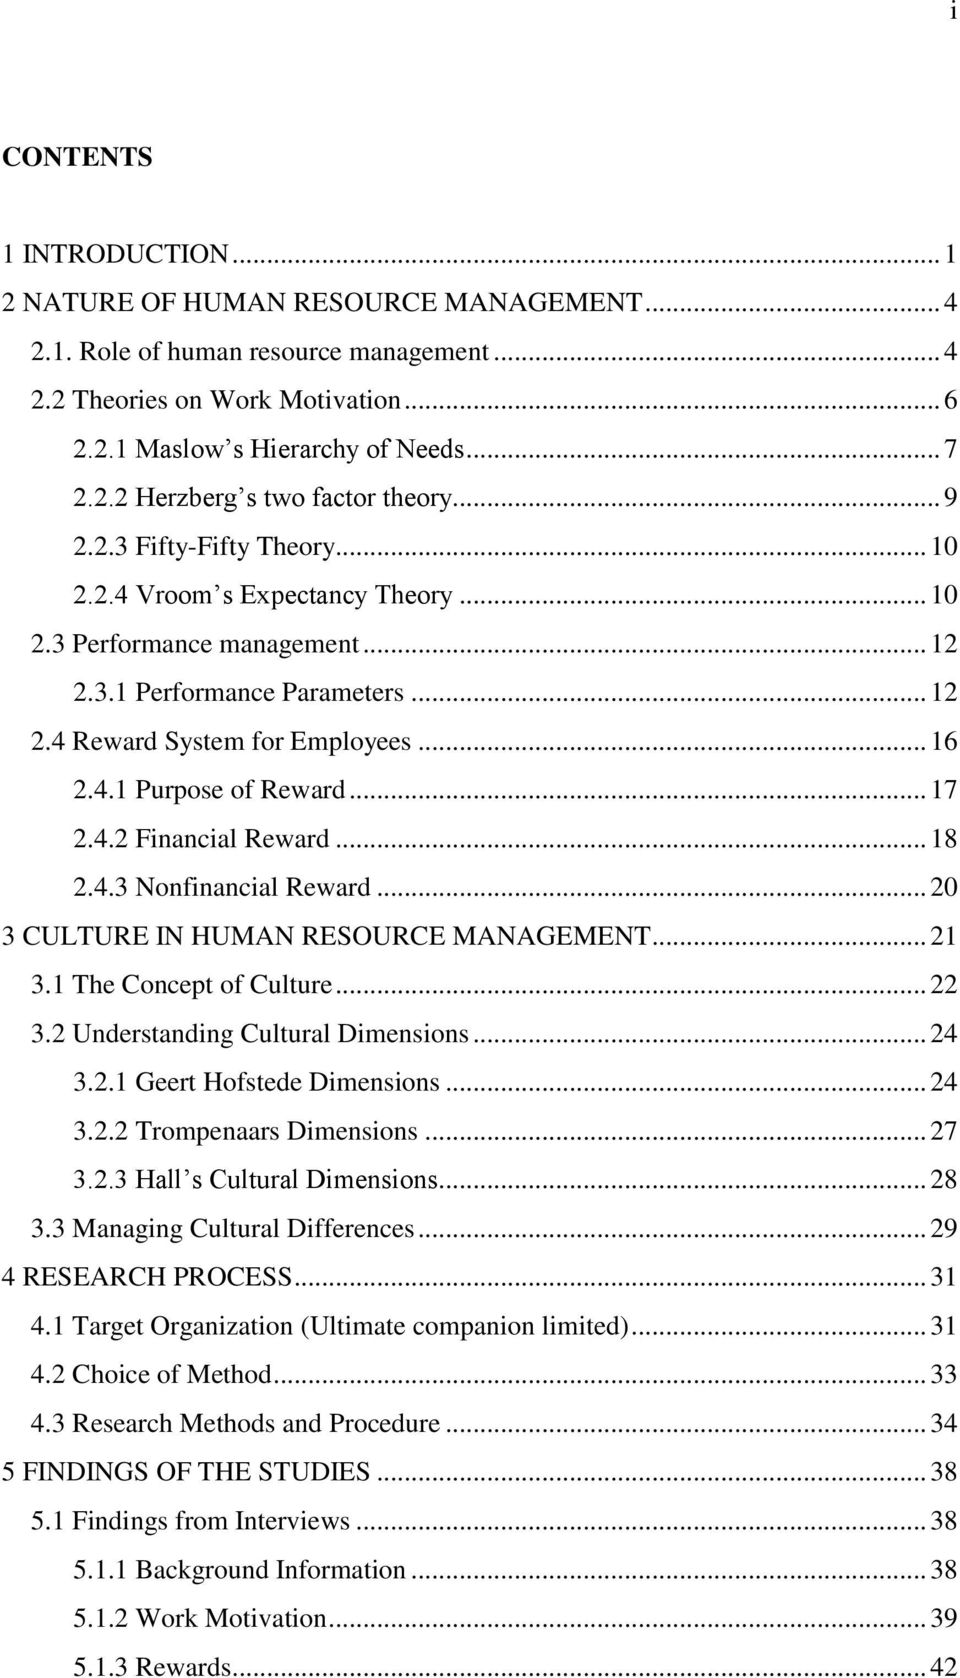 dissertation on employee motivation and performance  dissertation on employee motivation and performance